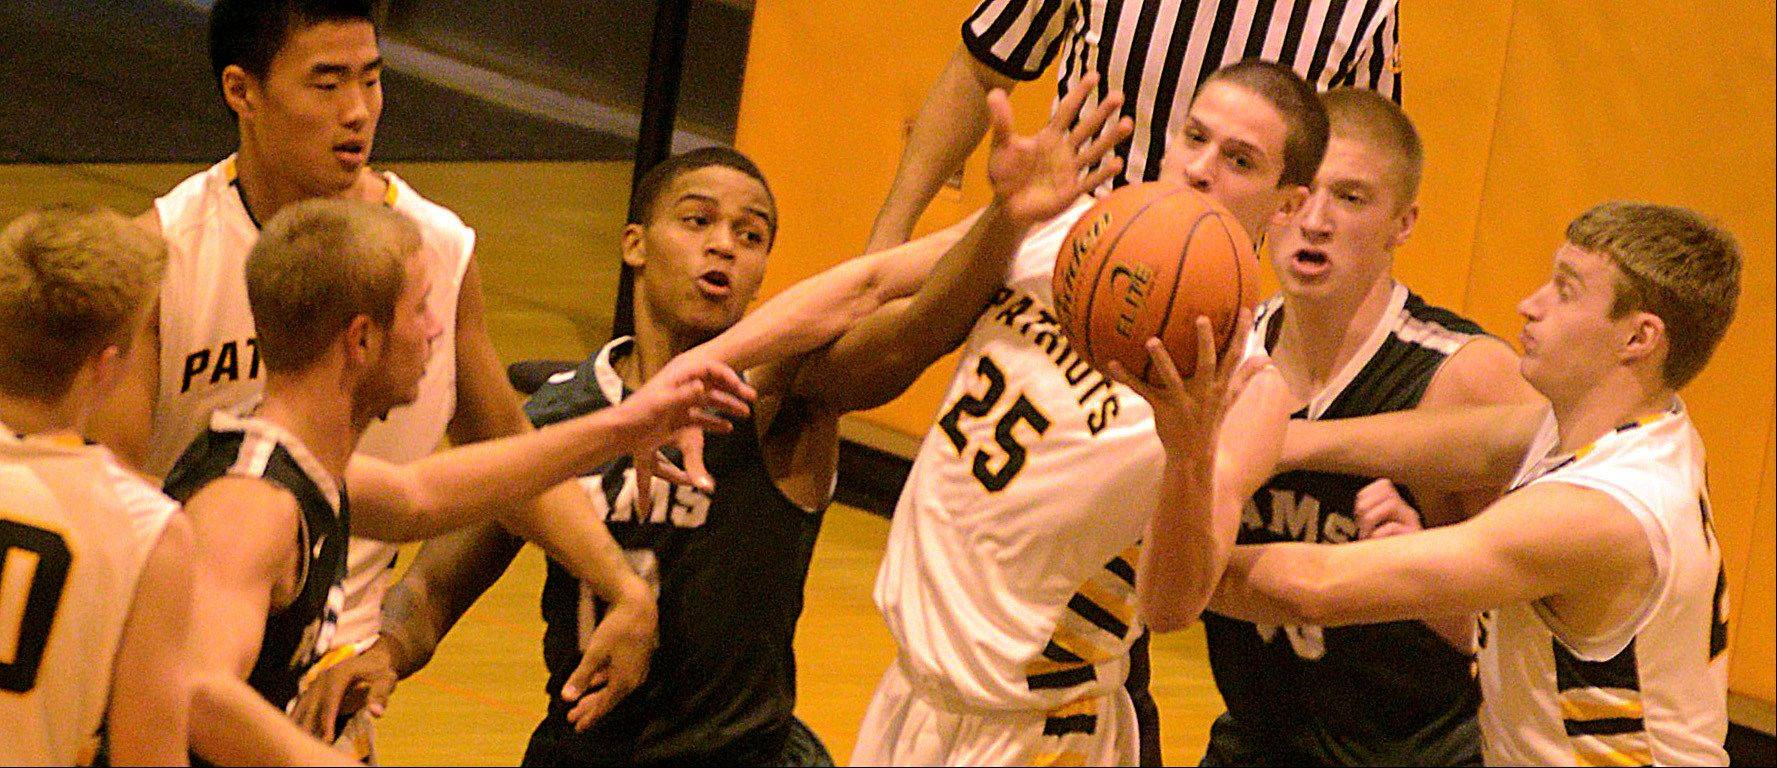 Grayslake Central's Malcolm Reed, center left, and Stevenson's Jordan Hodes, center right, are at the center of a rebound tussle at Buffalo Grove High School on Monday evening.